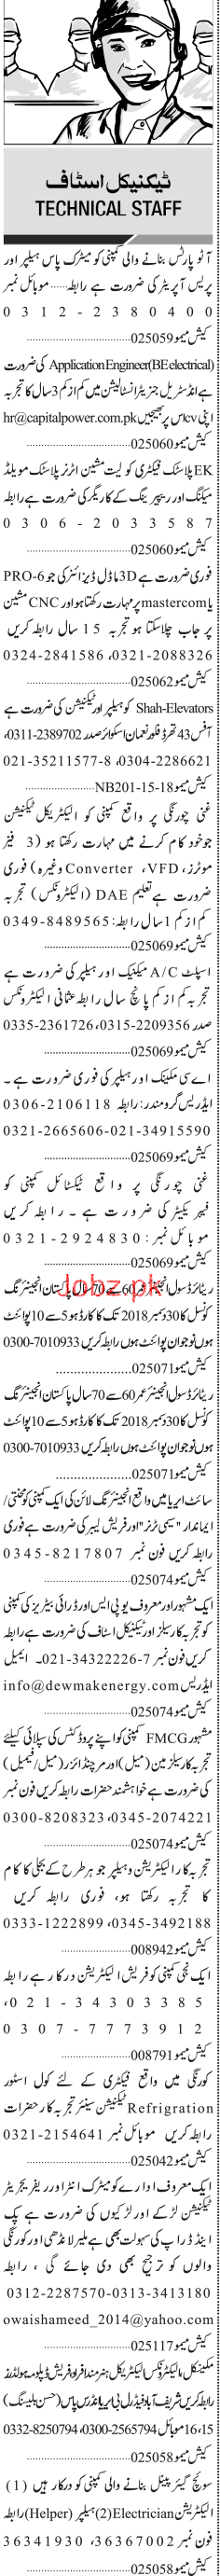 Application Engineer Electrical Job Opportunity